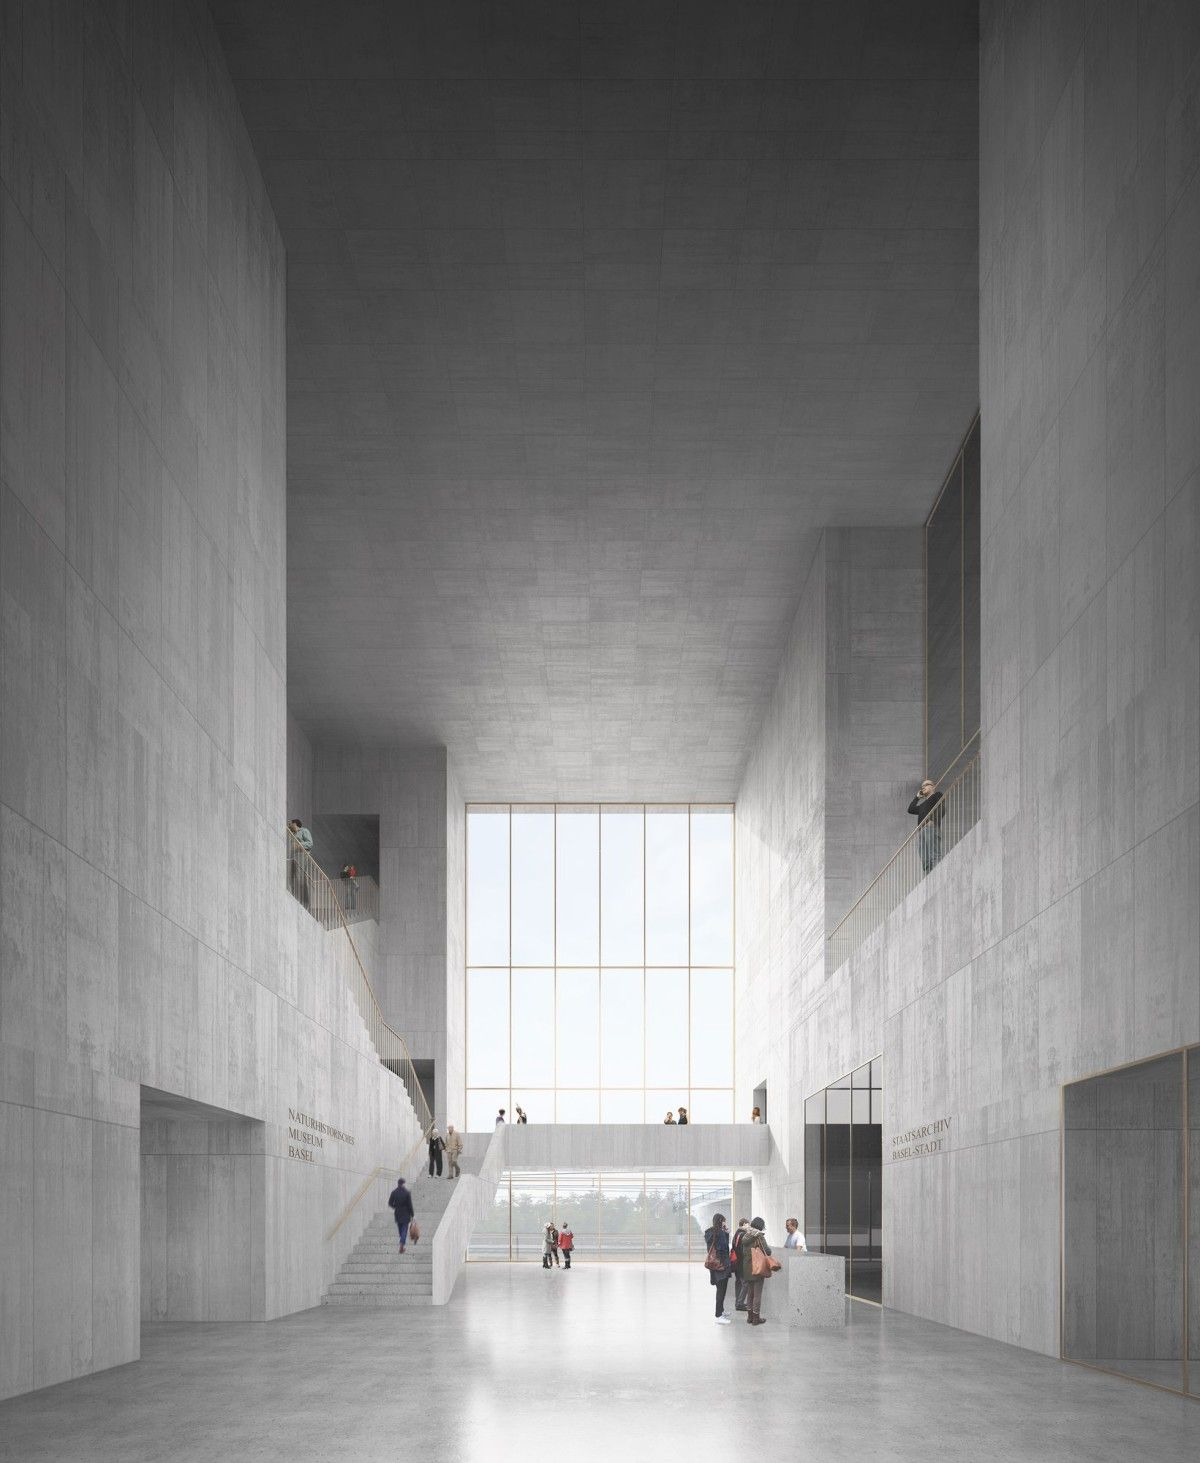 barozzi veiga new museum of natural history basel 4 arch renderings pinterest. Black Bedroom Furniture Sets. Home Design Ideas